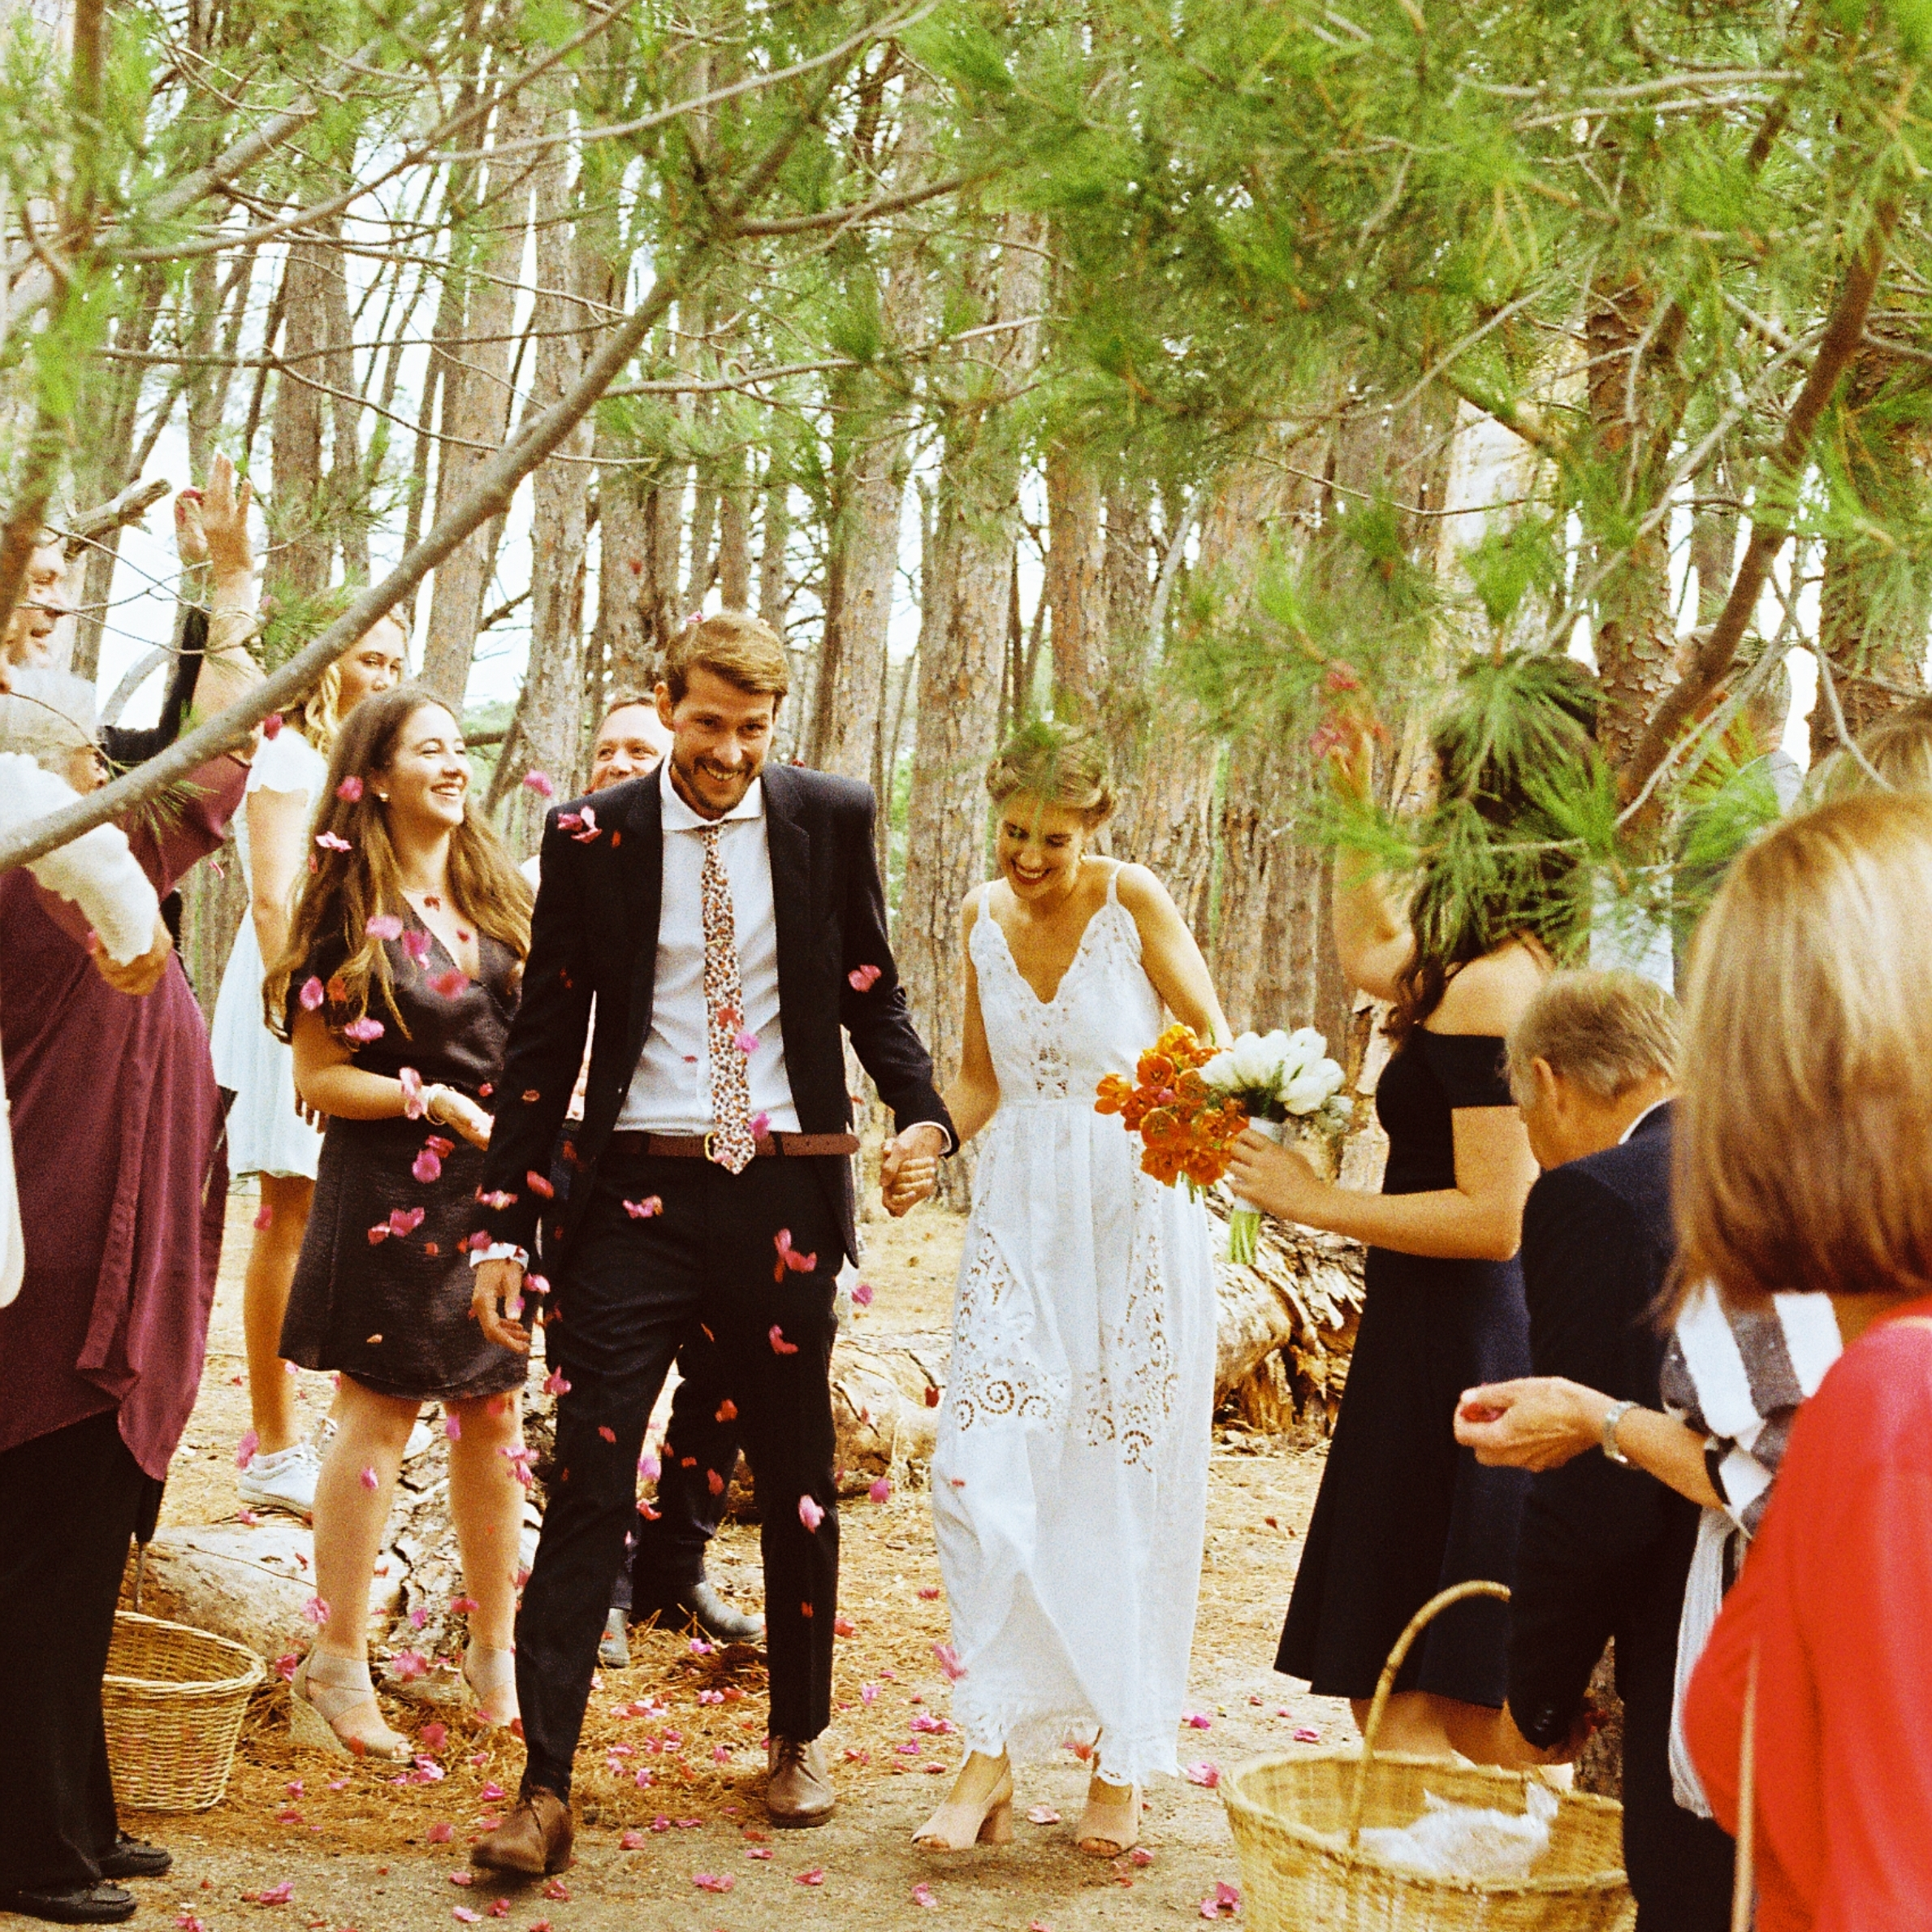 Robyn & BennetPhoto: Ane StrydomVenue: Winery Road Forest -